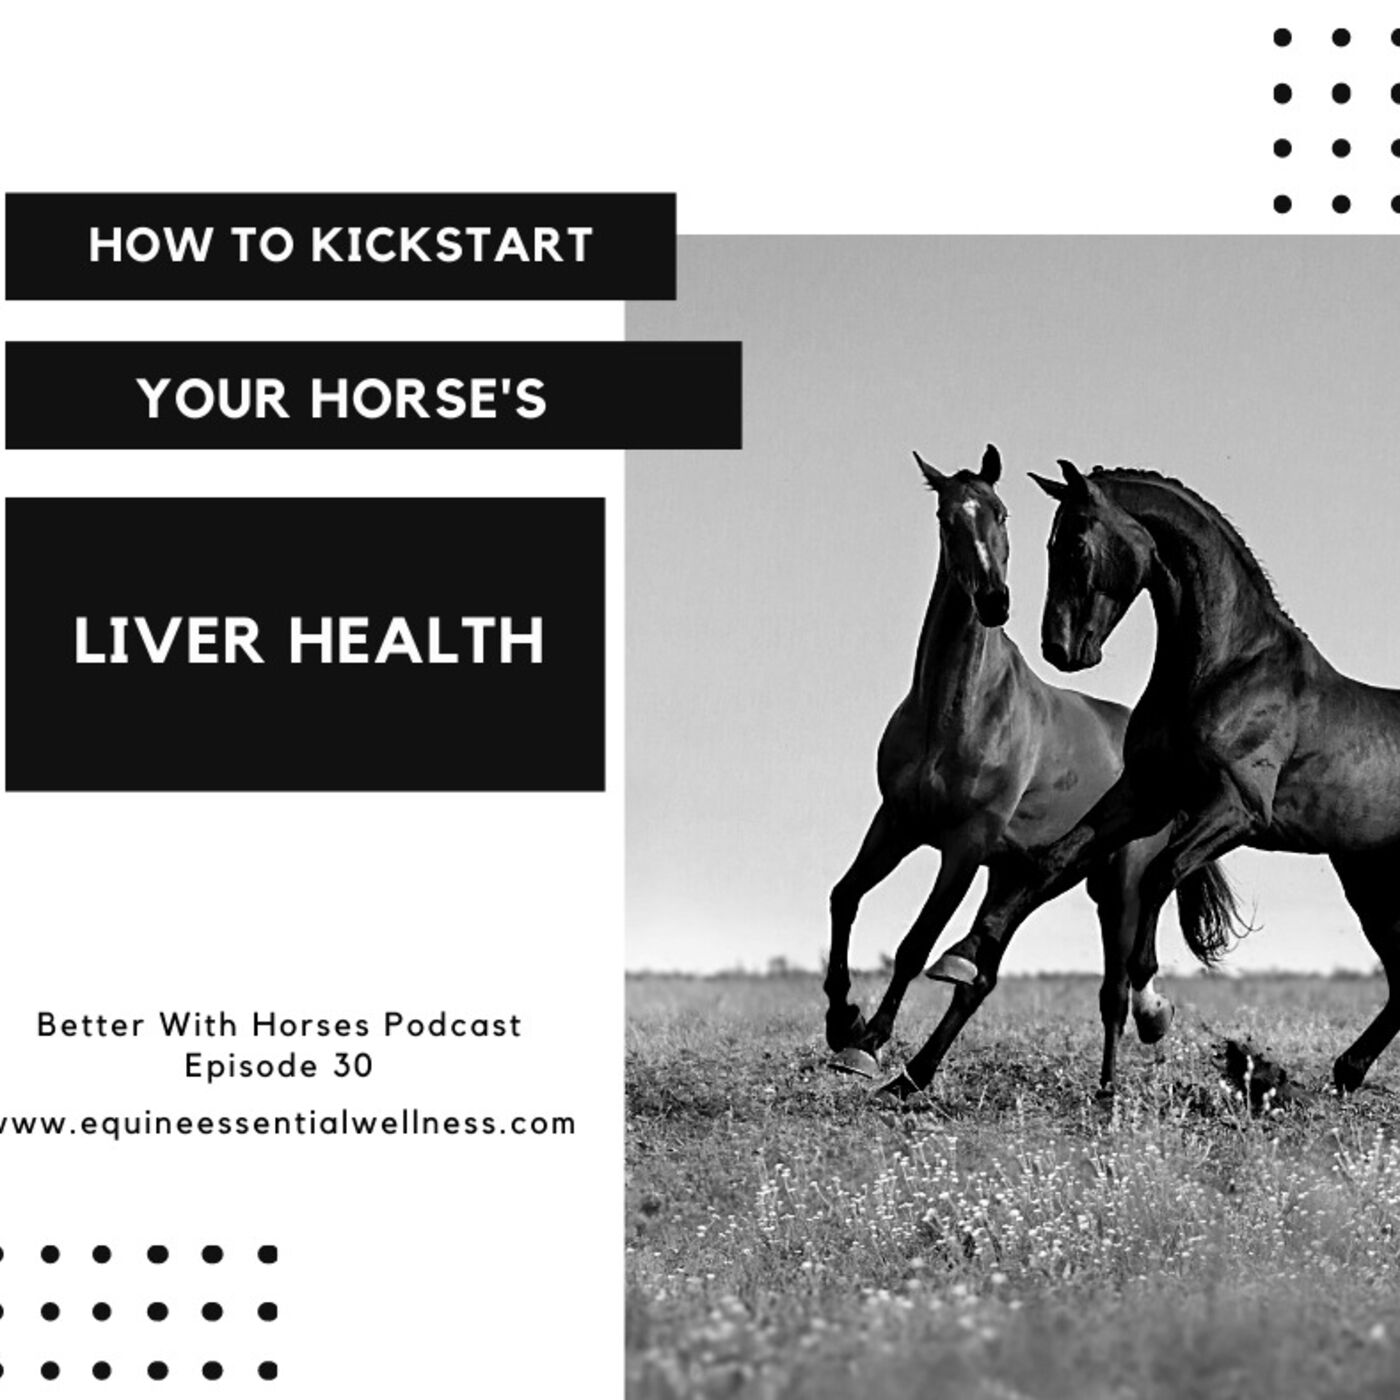 Episode 30 - How to Kickstart Your Horse's Liver Health